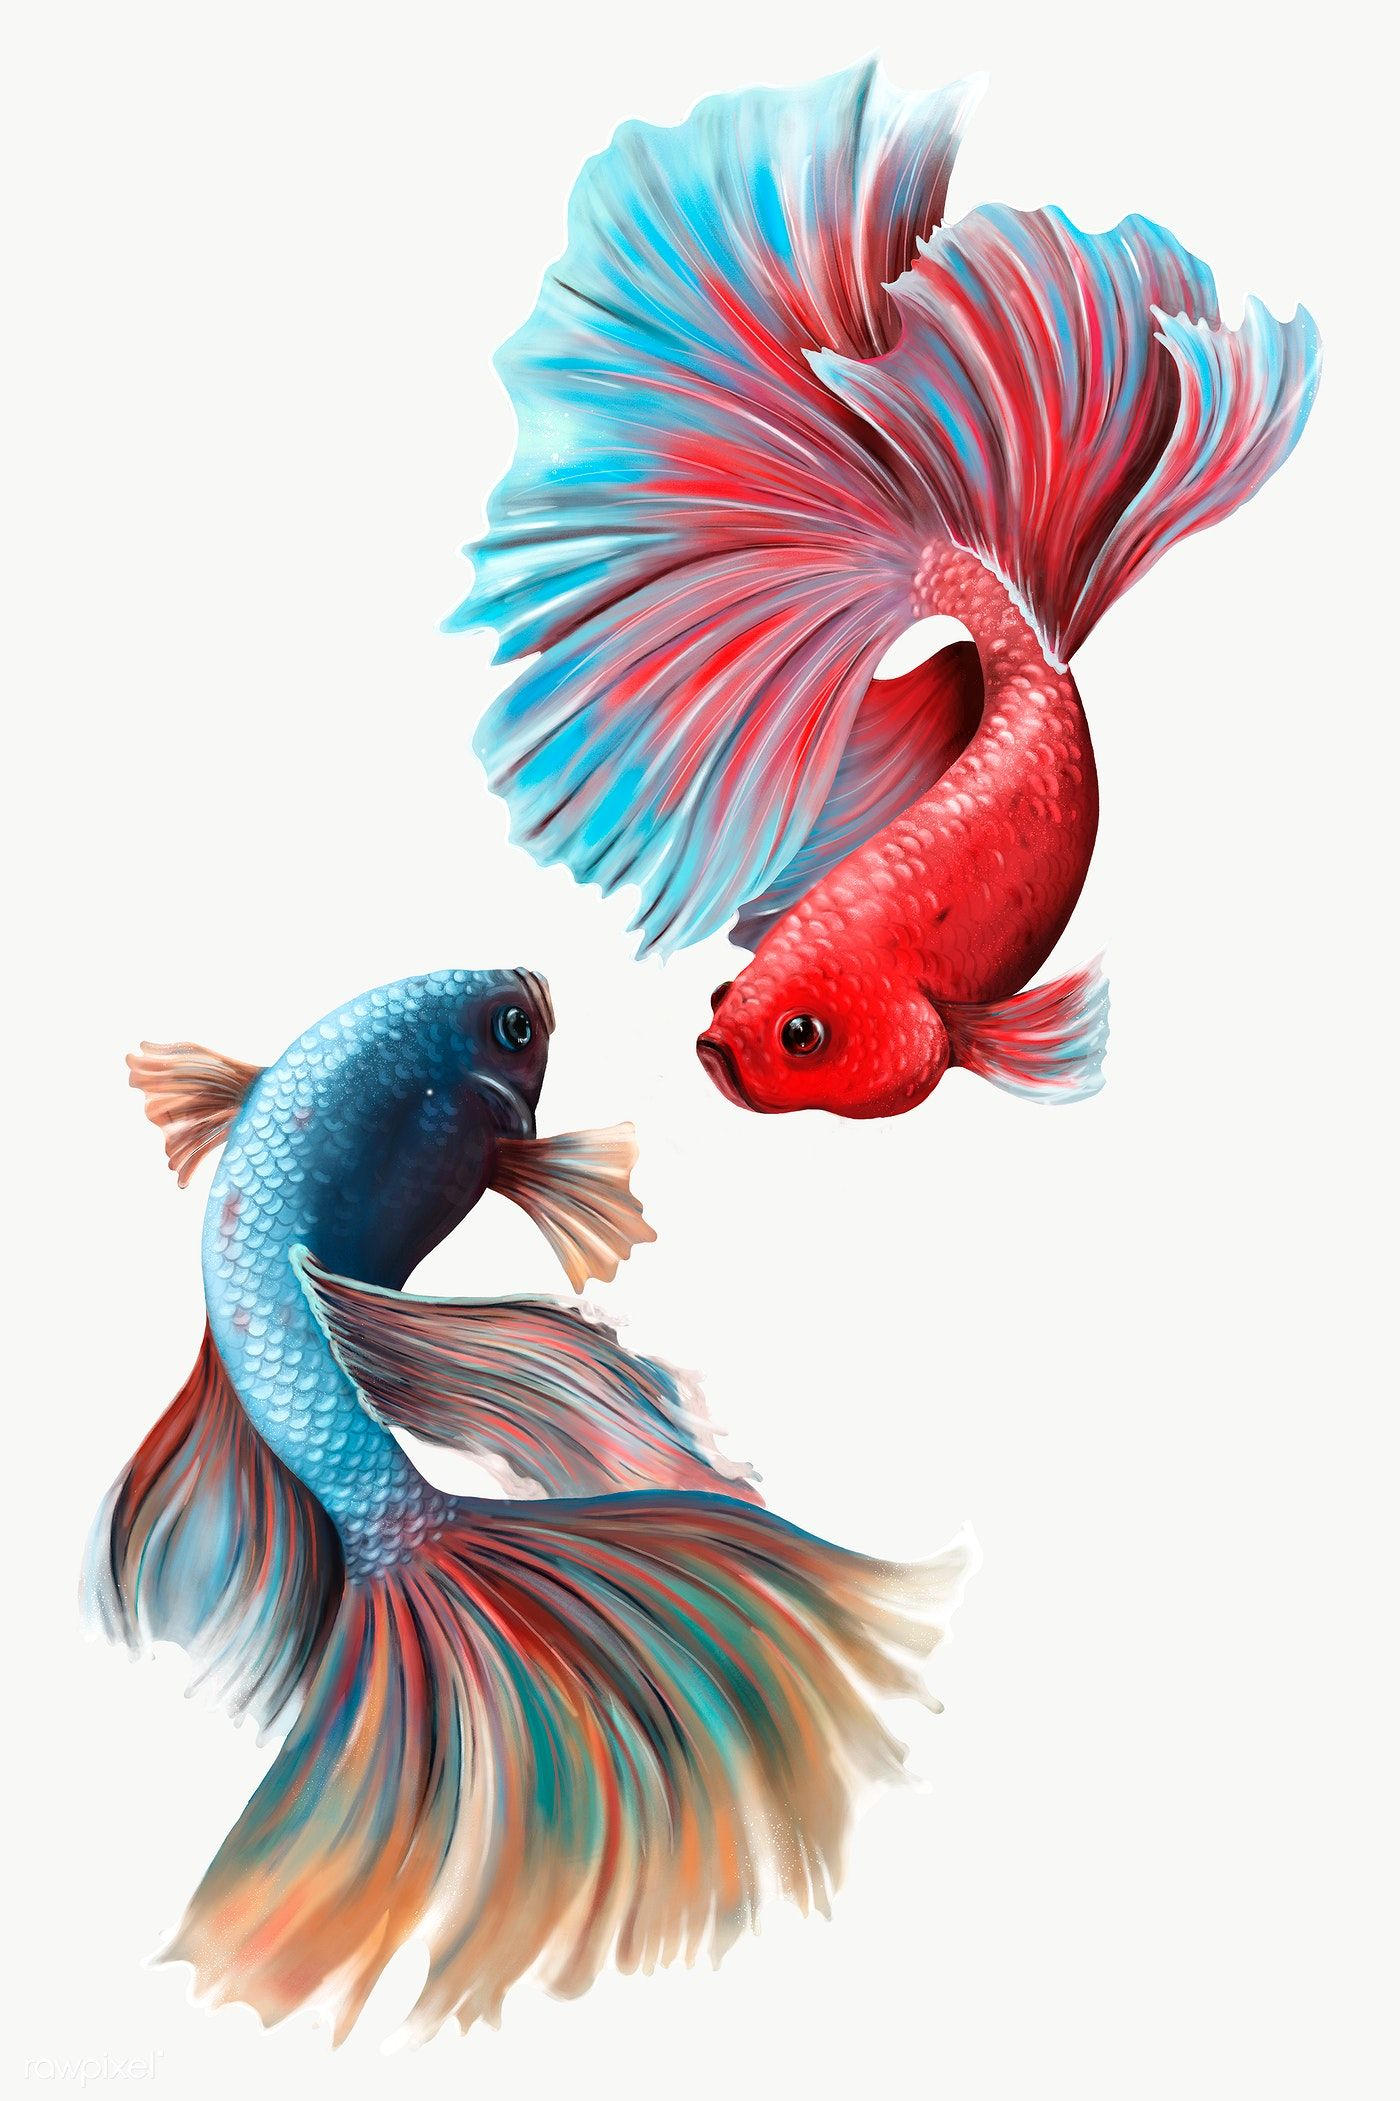 Colorful Betta Fishes Design Element Premium Image By Rawpixel Com Te In 2021 Fish Drawings Betta Fish Painted Rock Animals